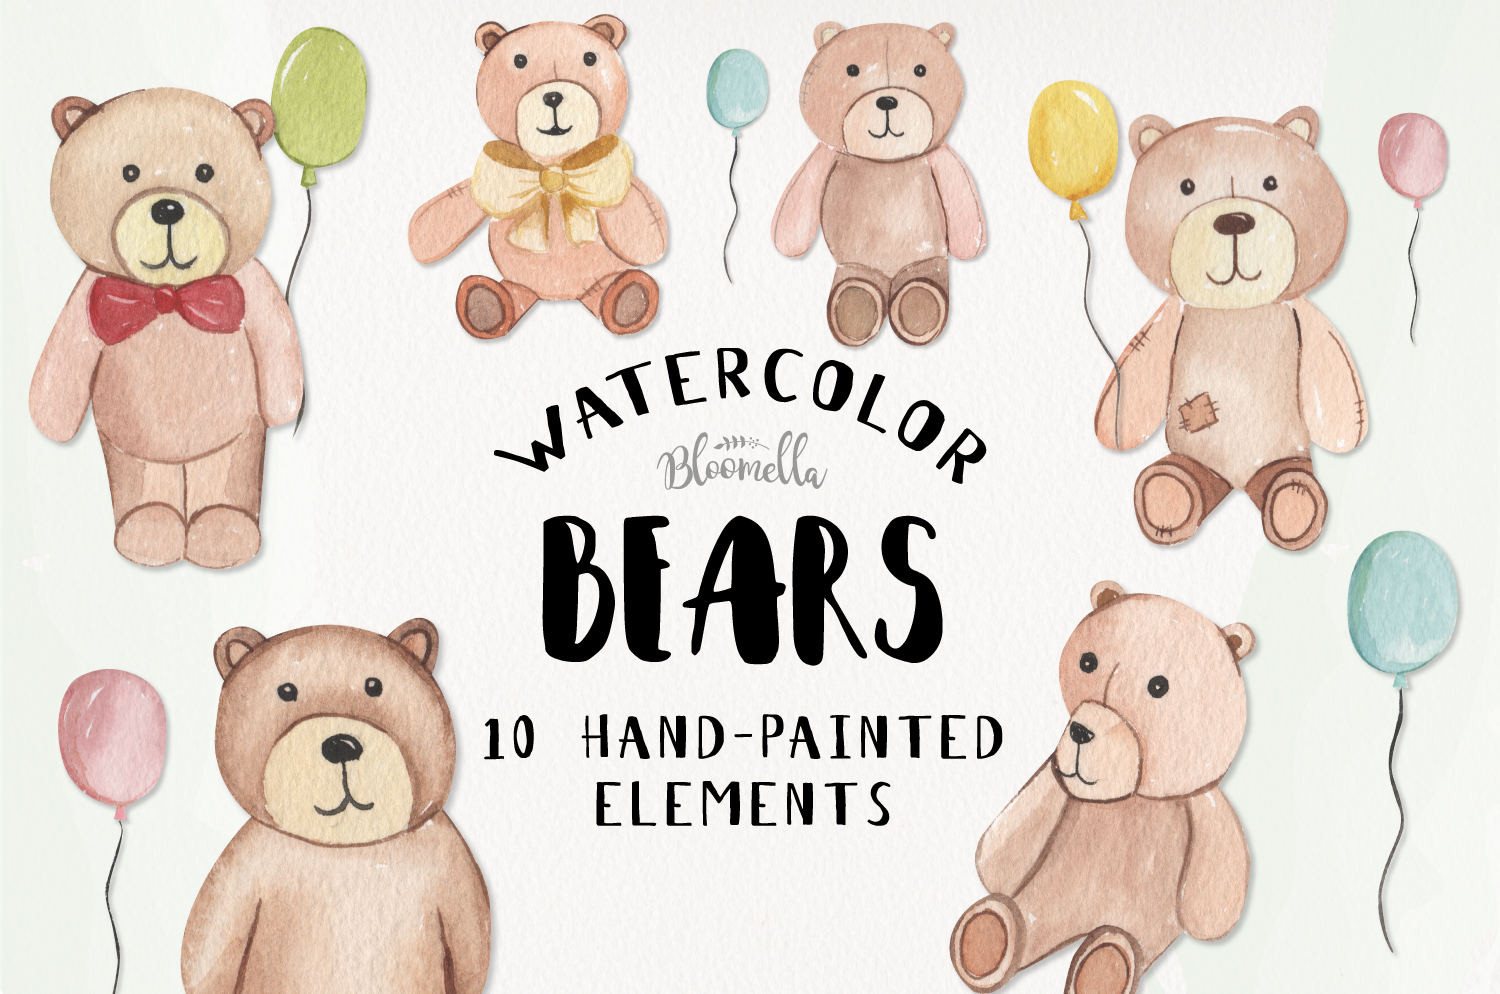 Teddy Bear Watercolor 10 Elements With Balloons Fun Bears example image 1